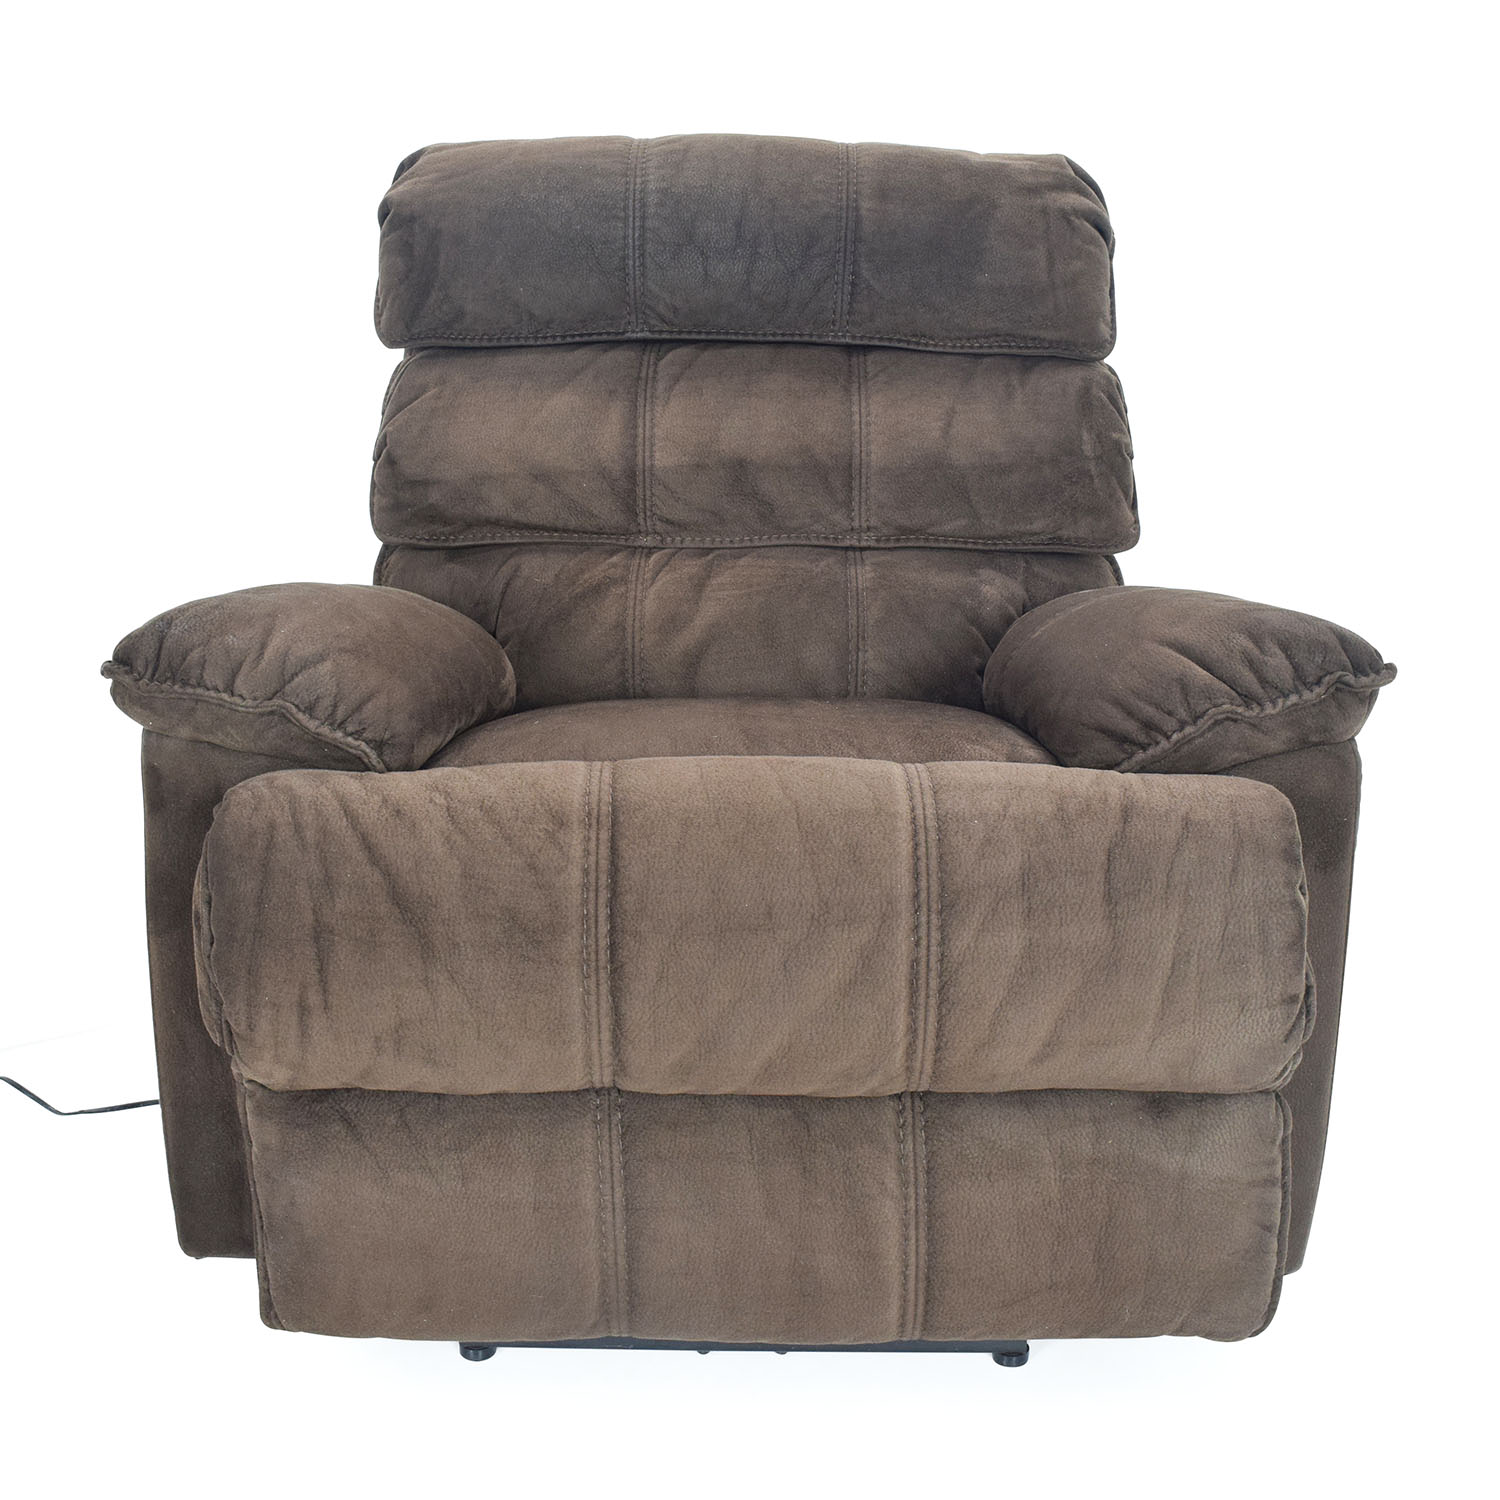 69 OFF Macys Macys Recliner Chair Chairs